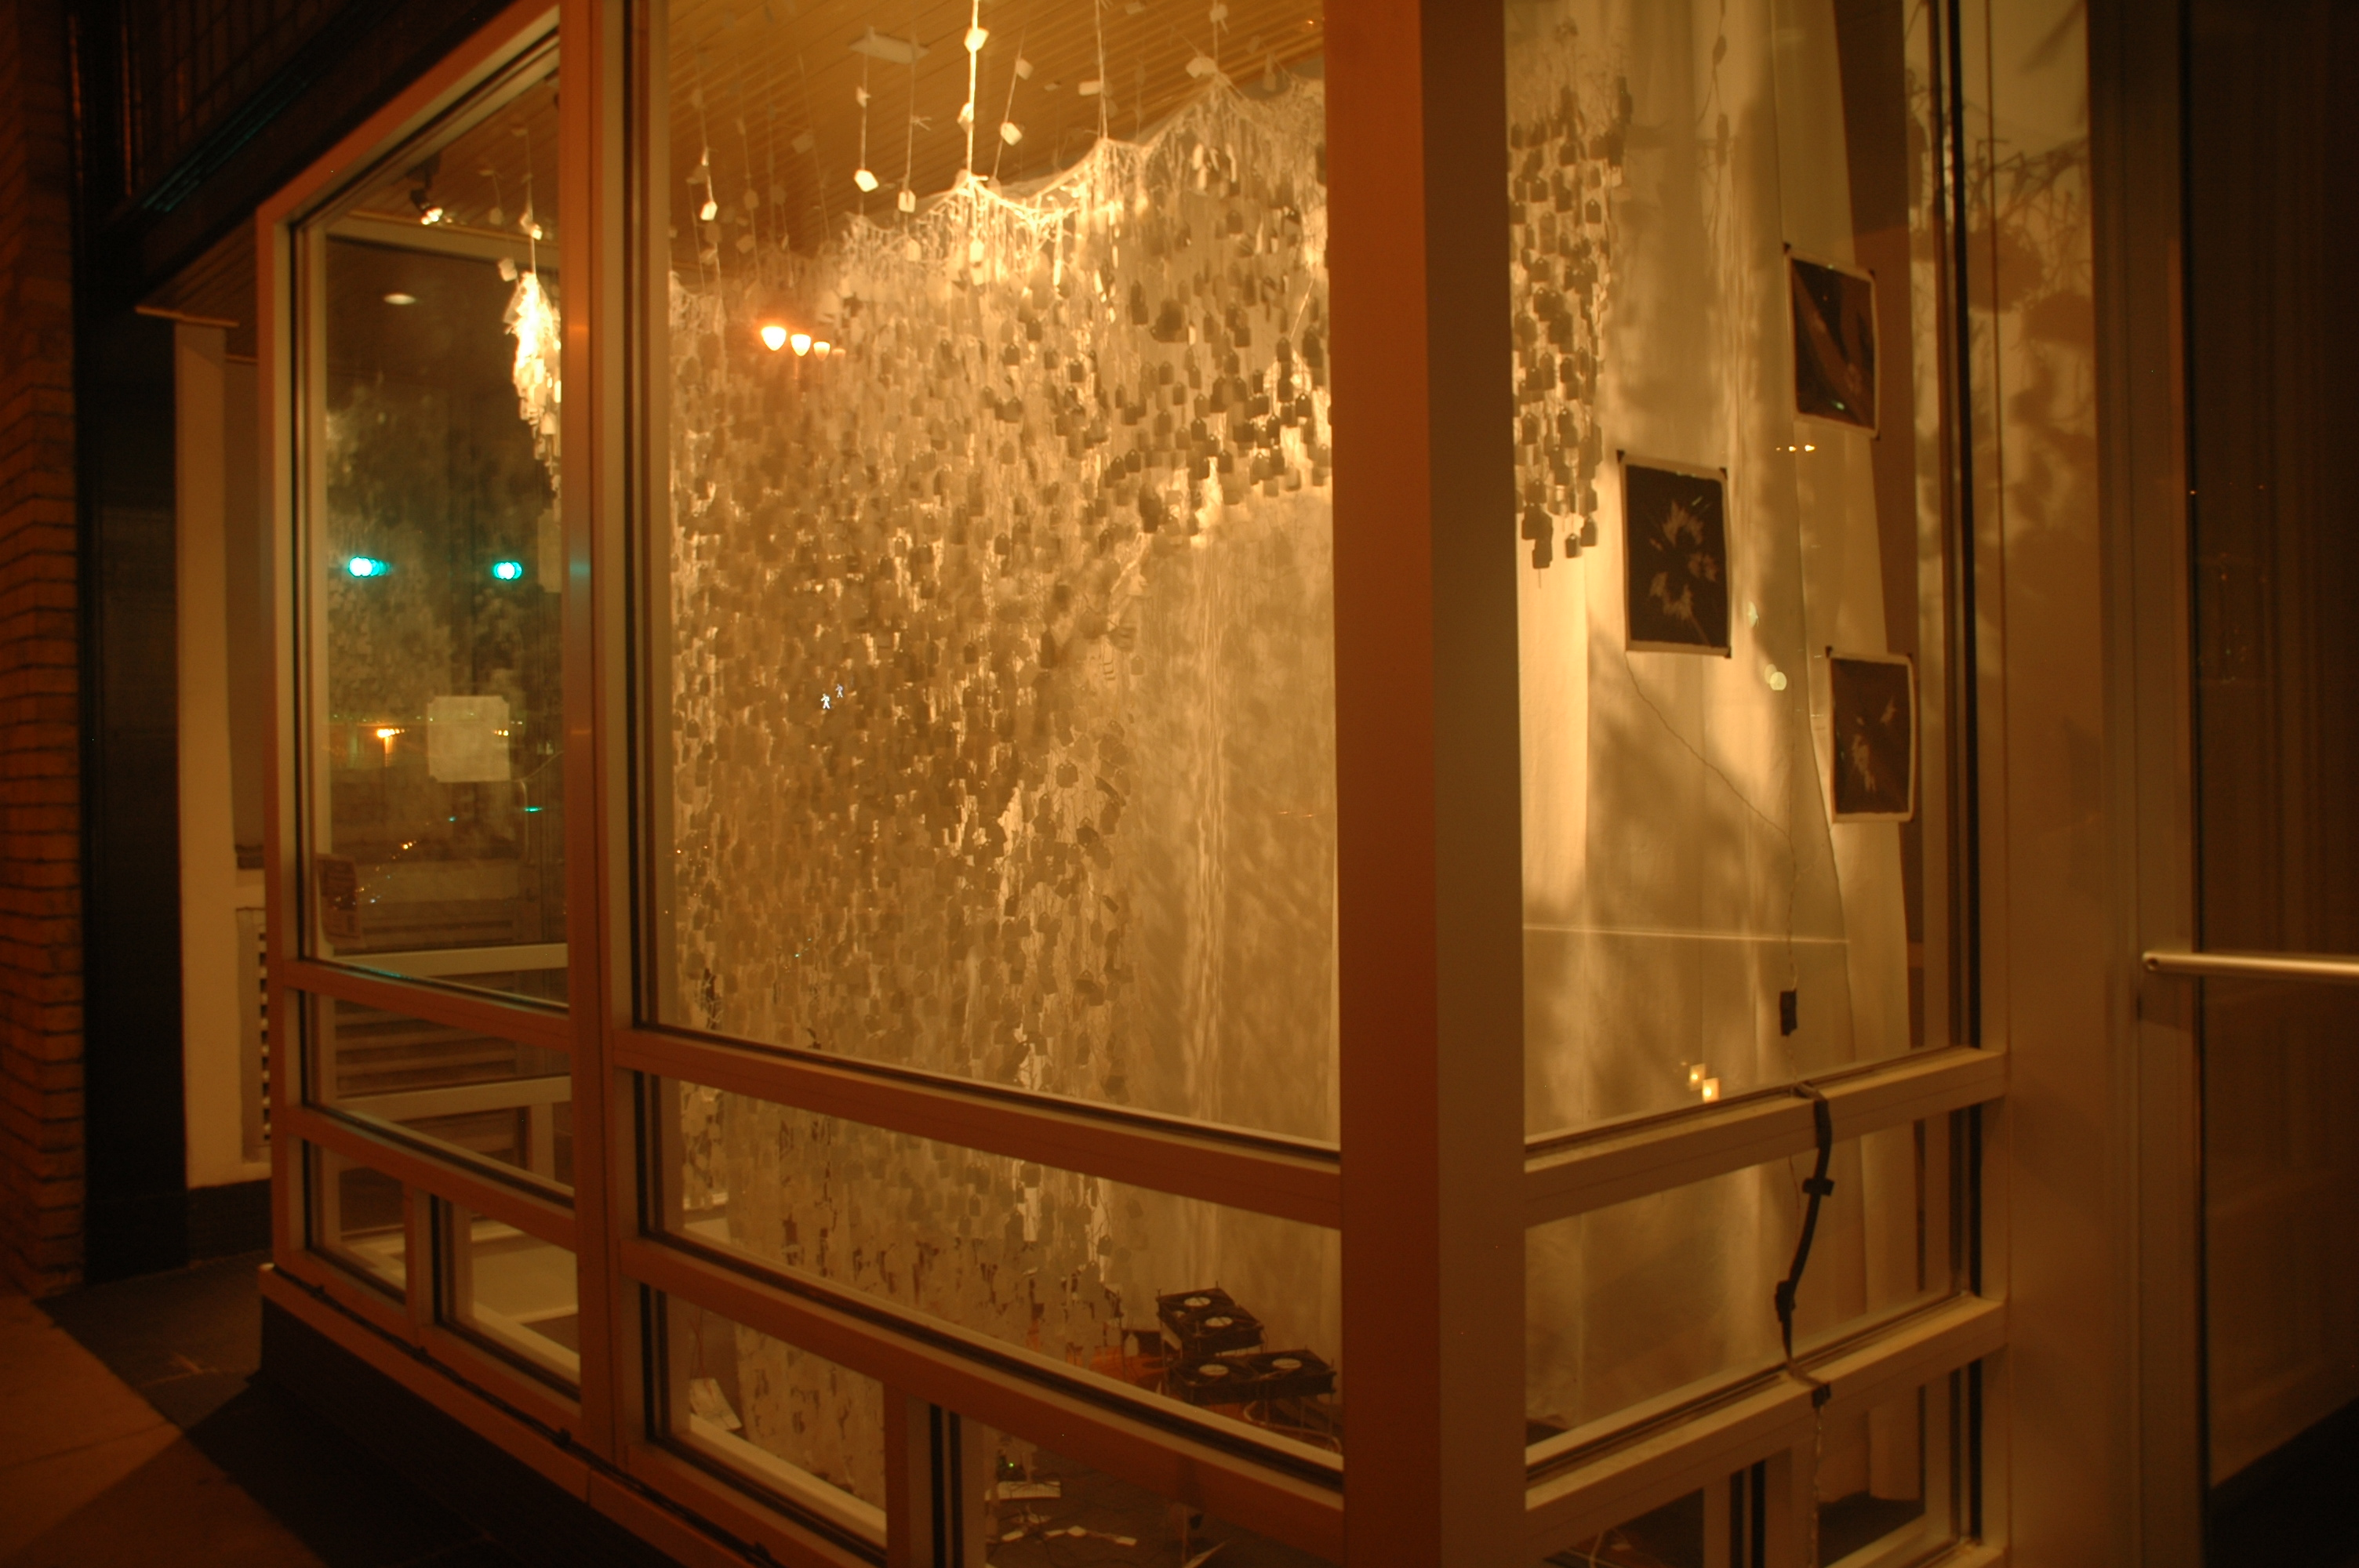 displaying 16 images for storefront window design